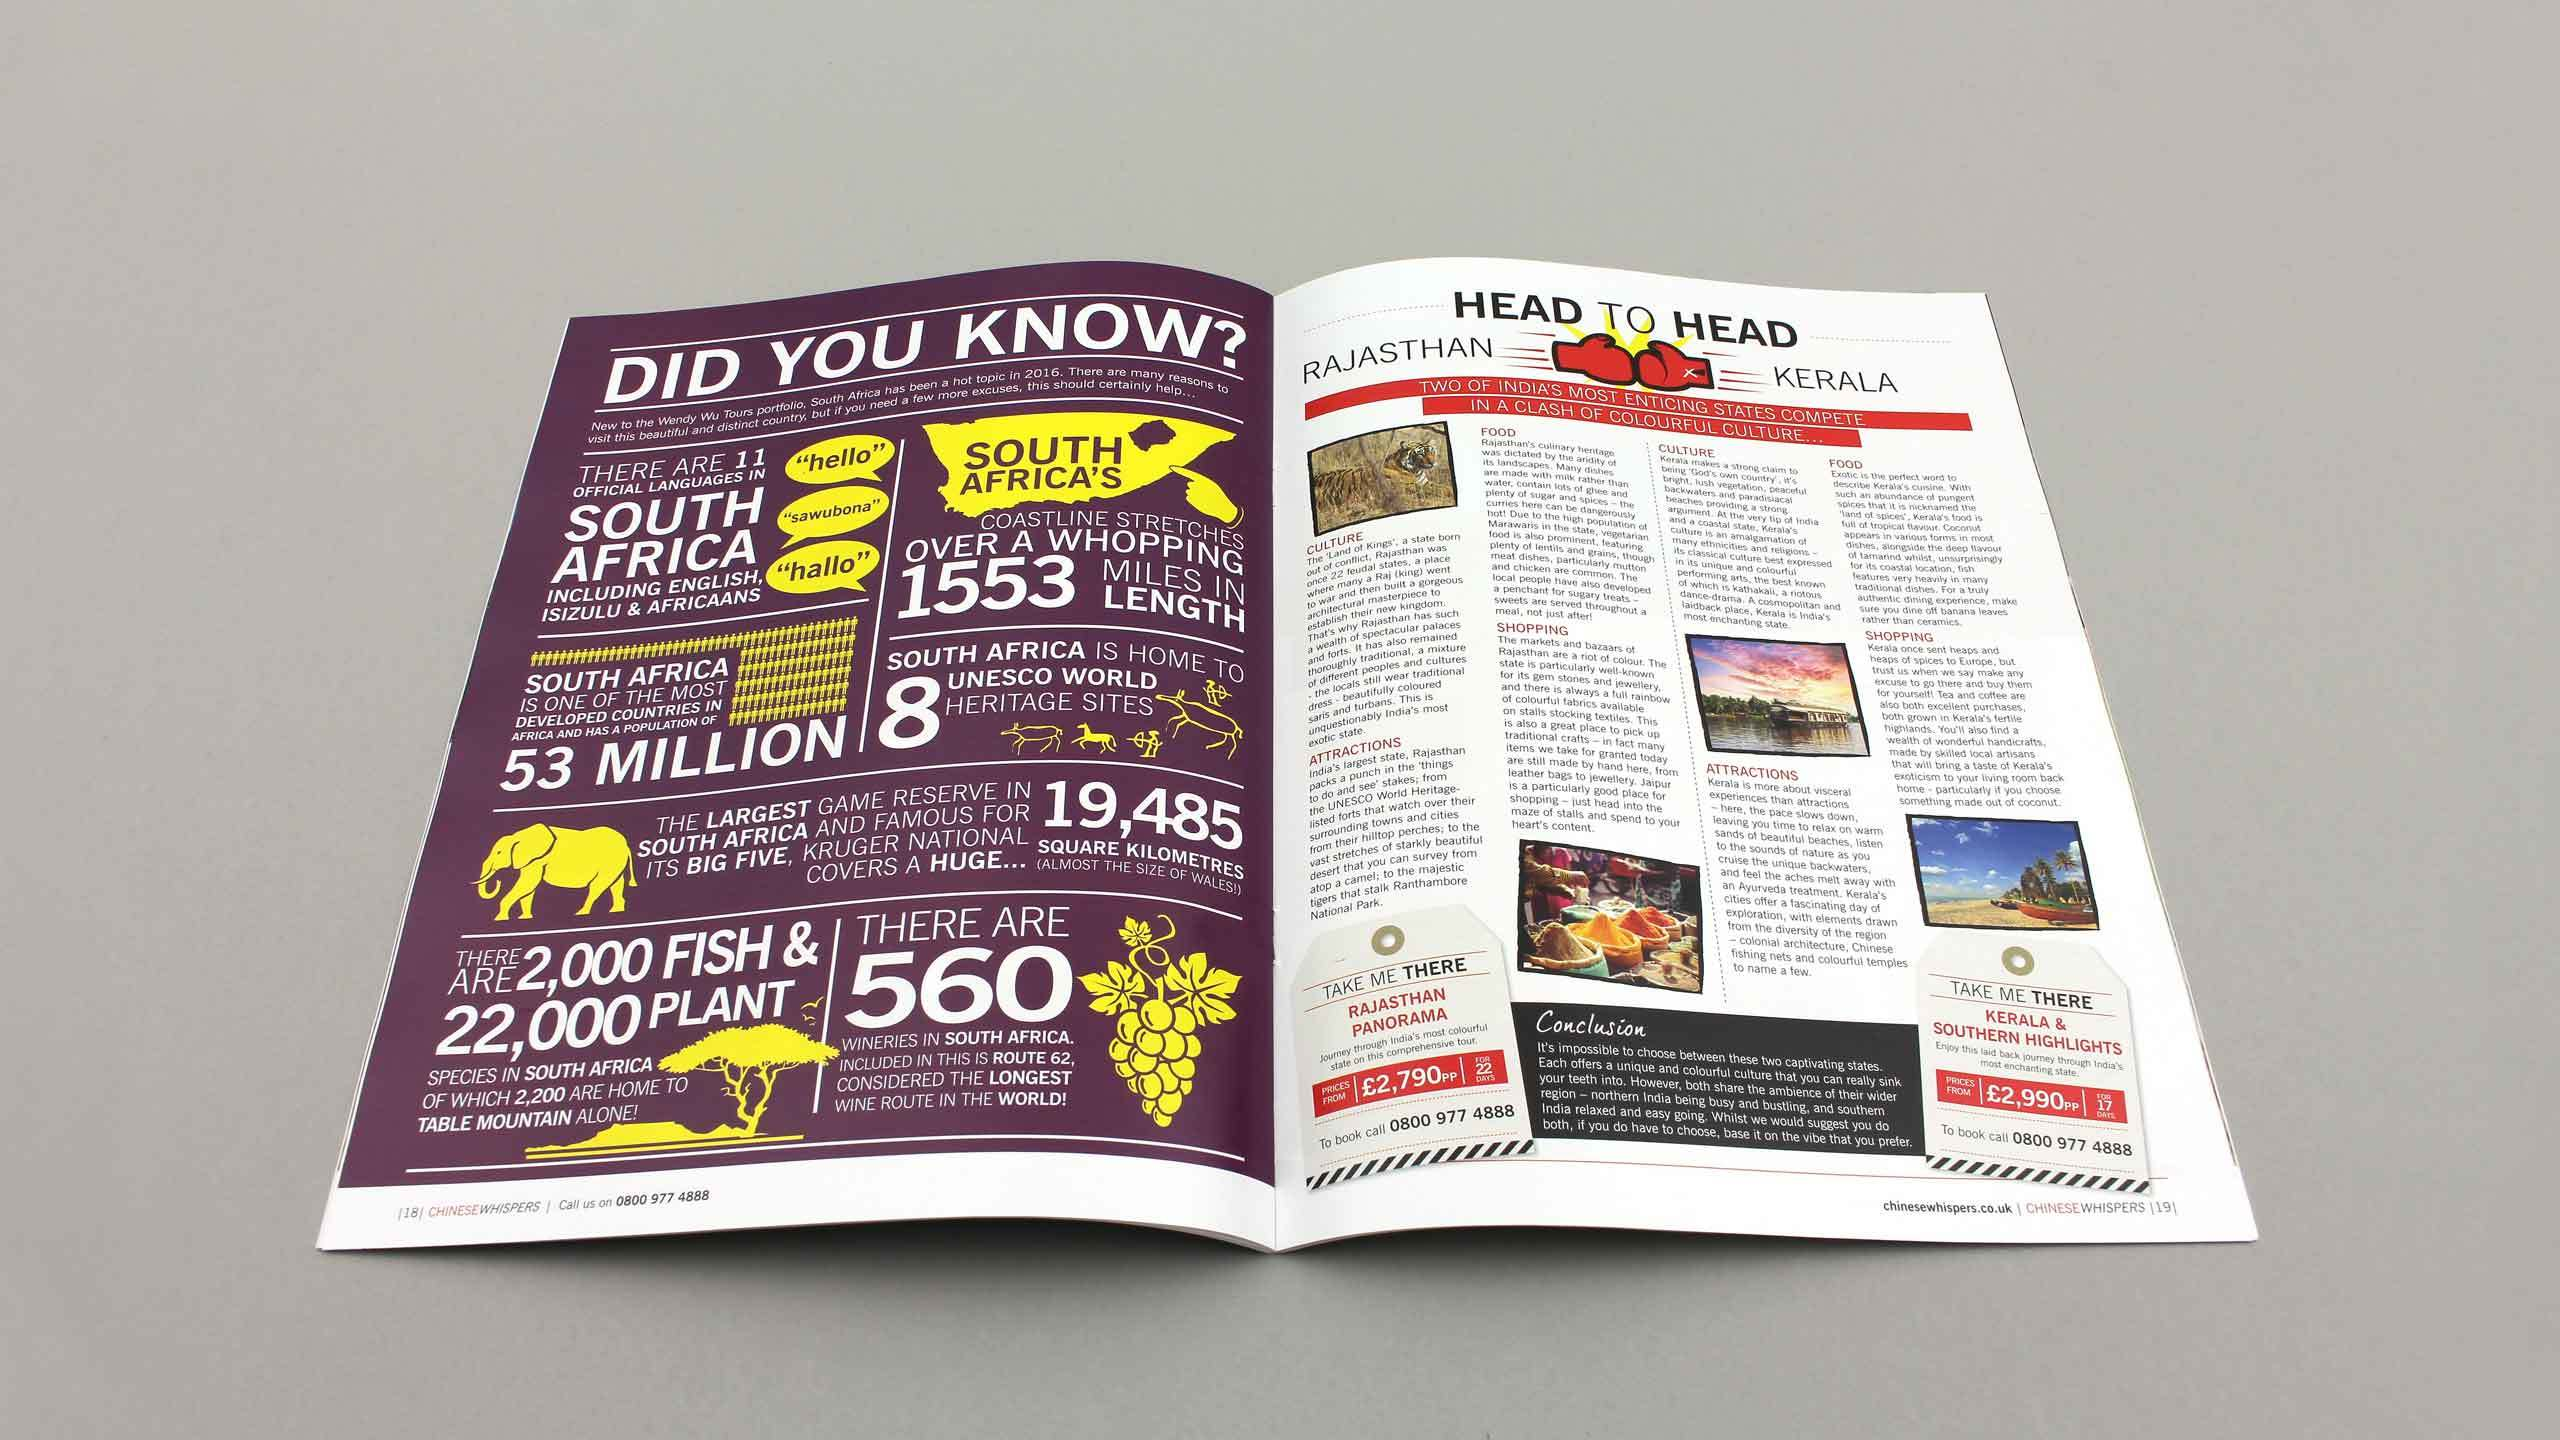 travel company graphic design did you know head head pages wendy wu